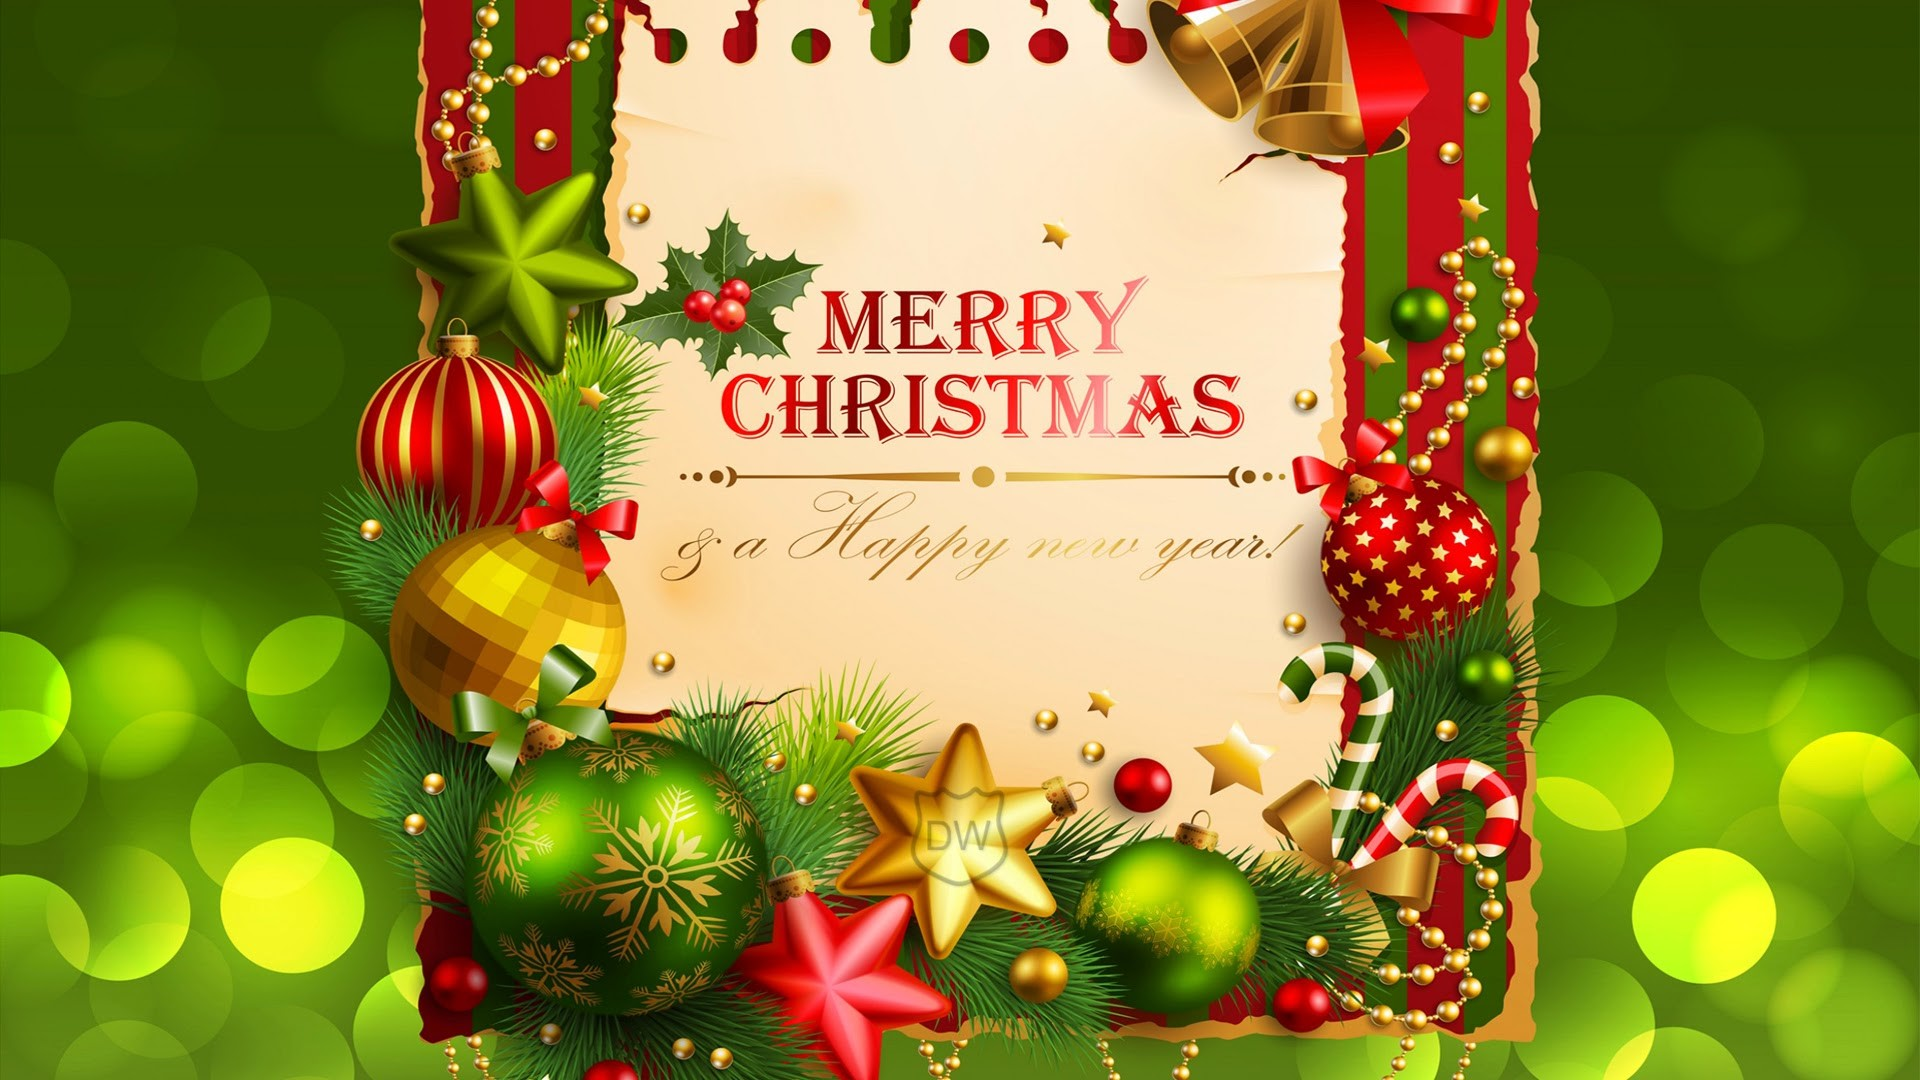 Animated Wallpapers Free Download For Xp Merry Christmas Background Pictures 183 ①